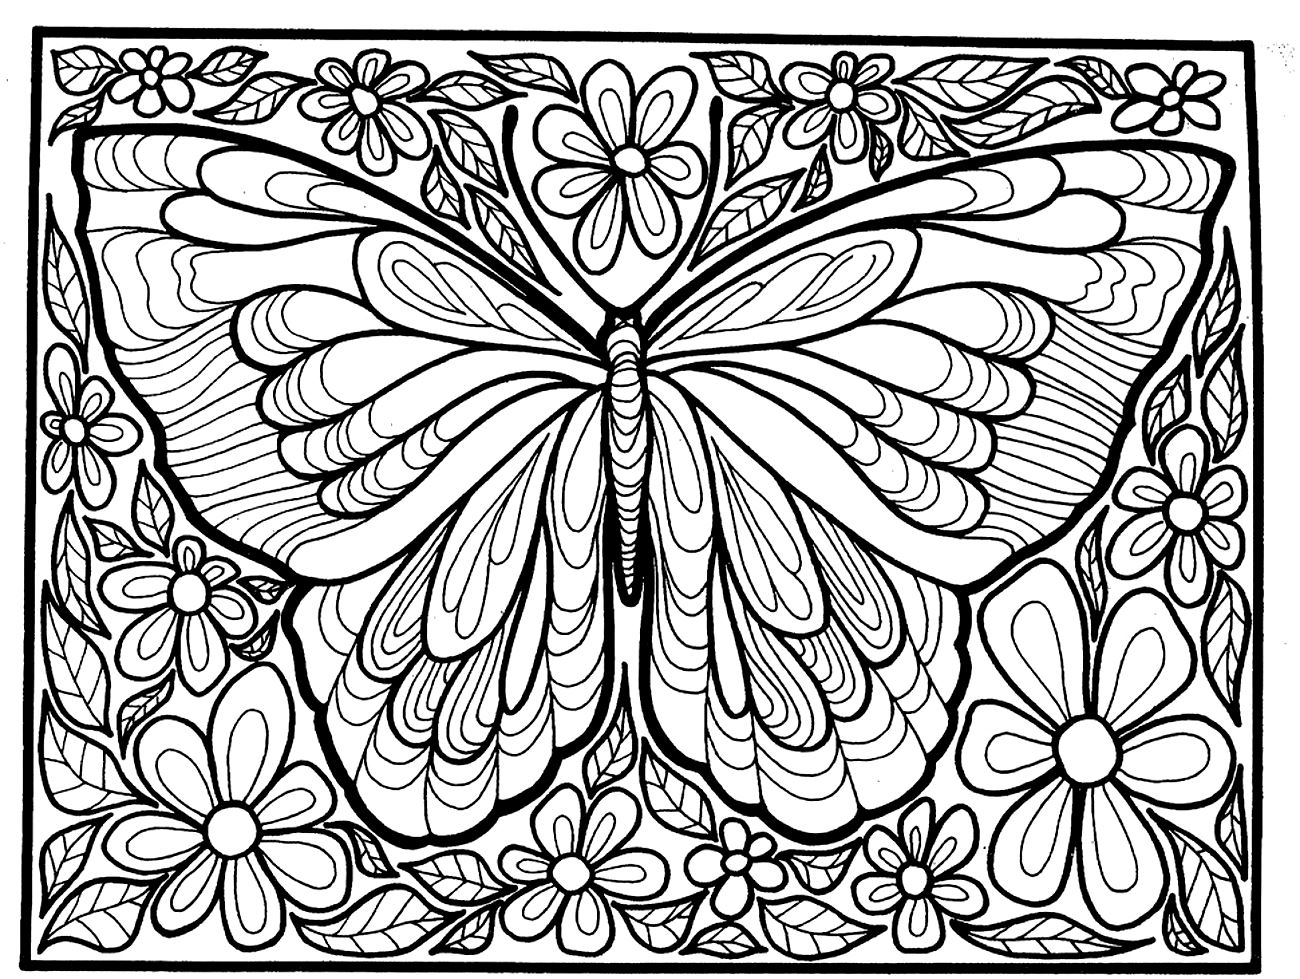 butterfly mosaic coloring page simple flower outline clipart clipground mosaic coloring butterfly page